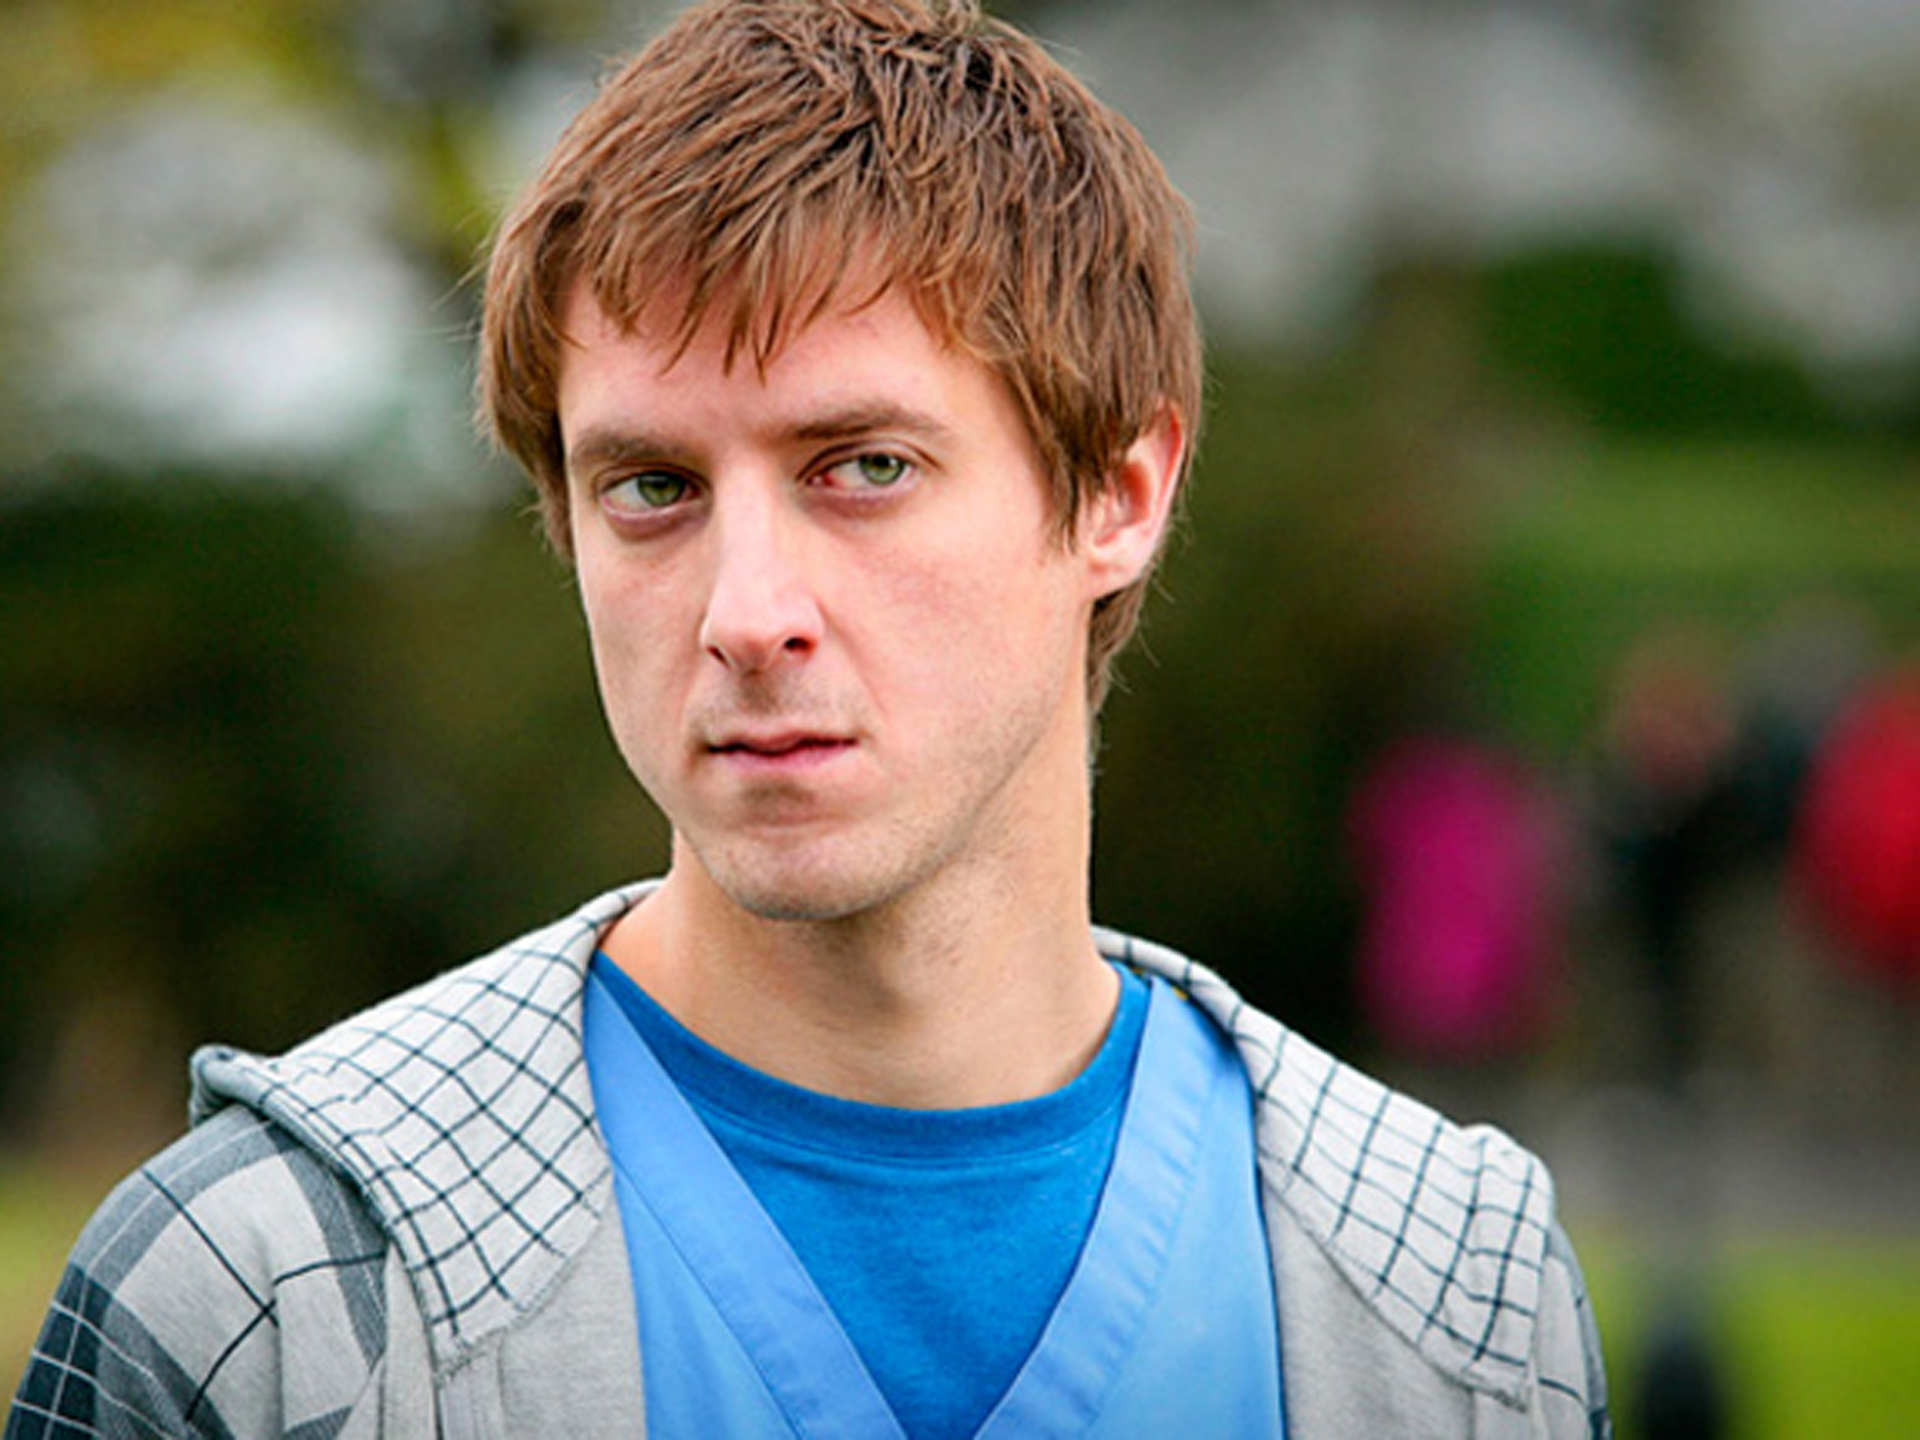 http://img1.wikia.nocookie.net/__cb20130614204838/doctor-who-tv/images/3/39/Rory-williams-arthur-darvill-1.jpg